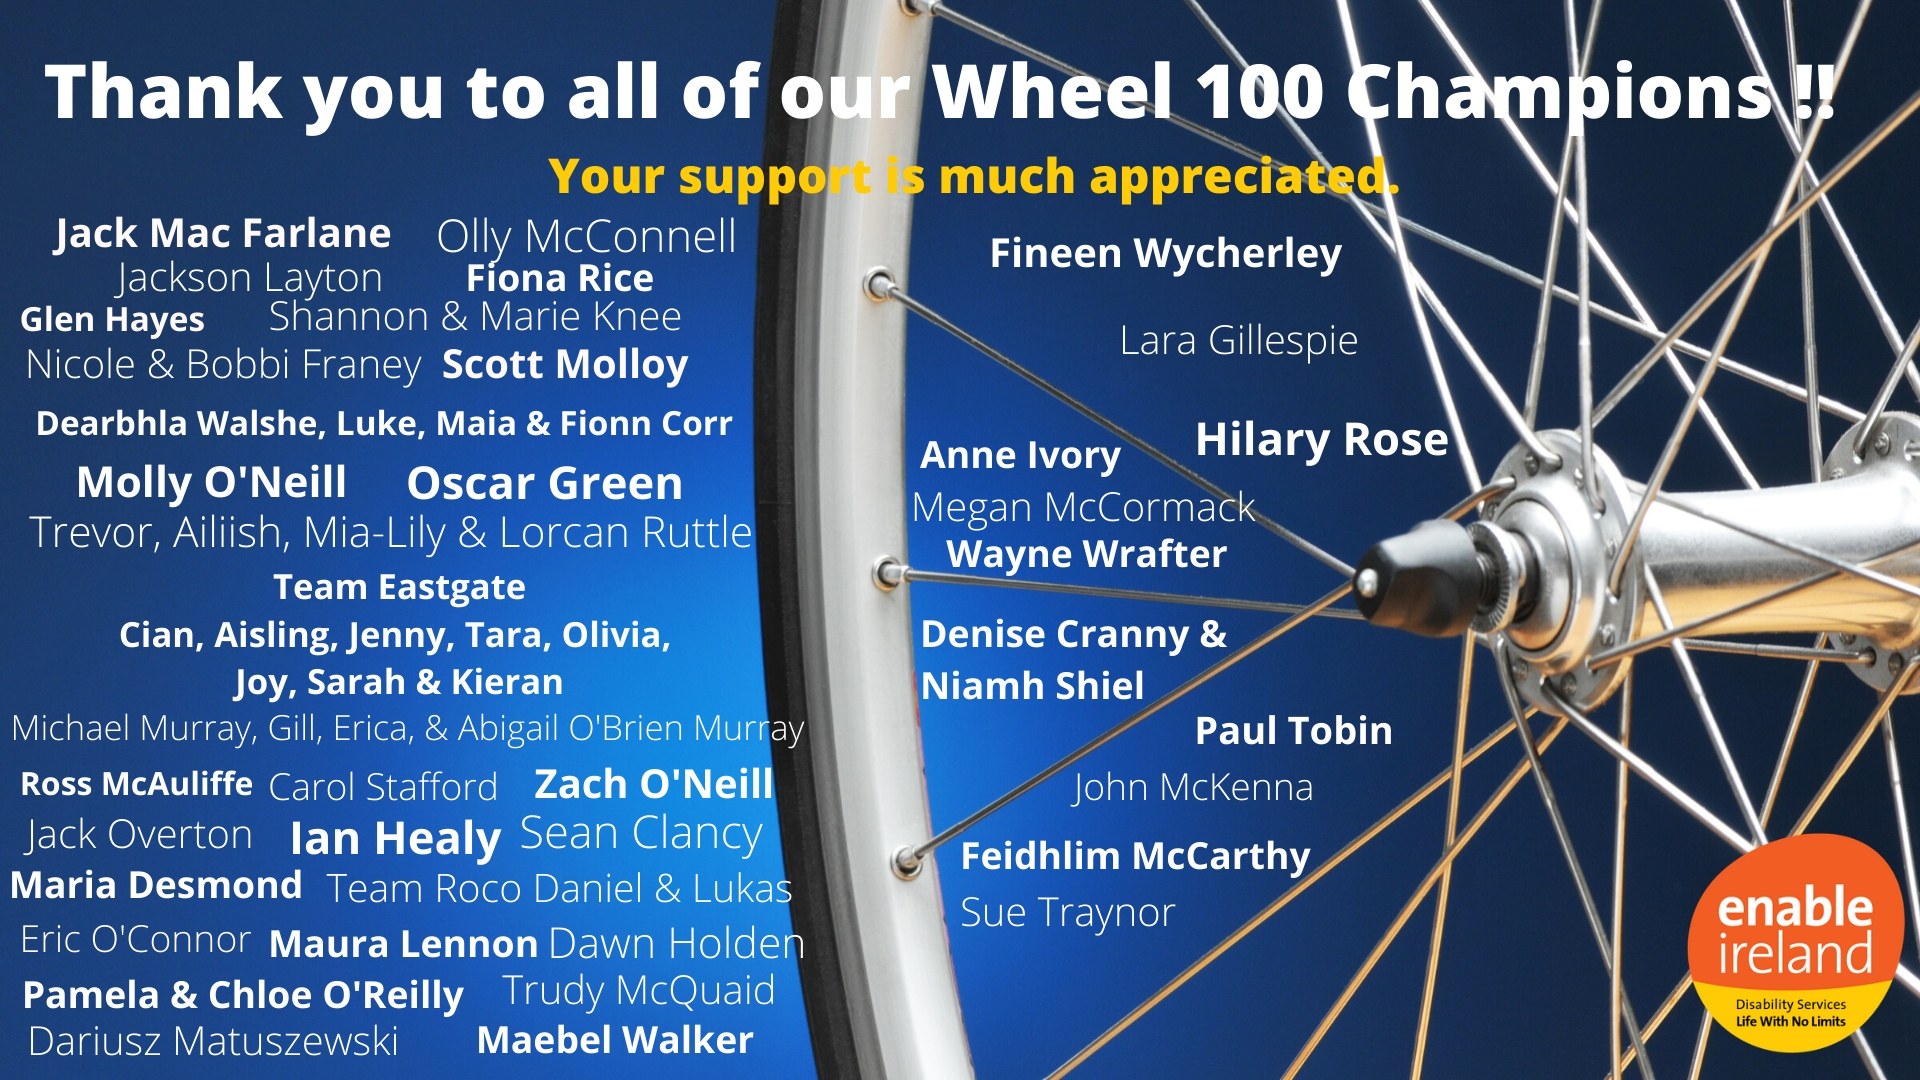 List of the Wheel 100 champions who raised funds for Enable Ireland